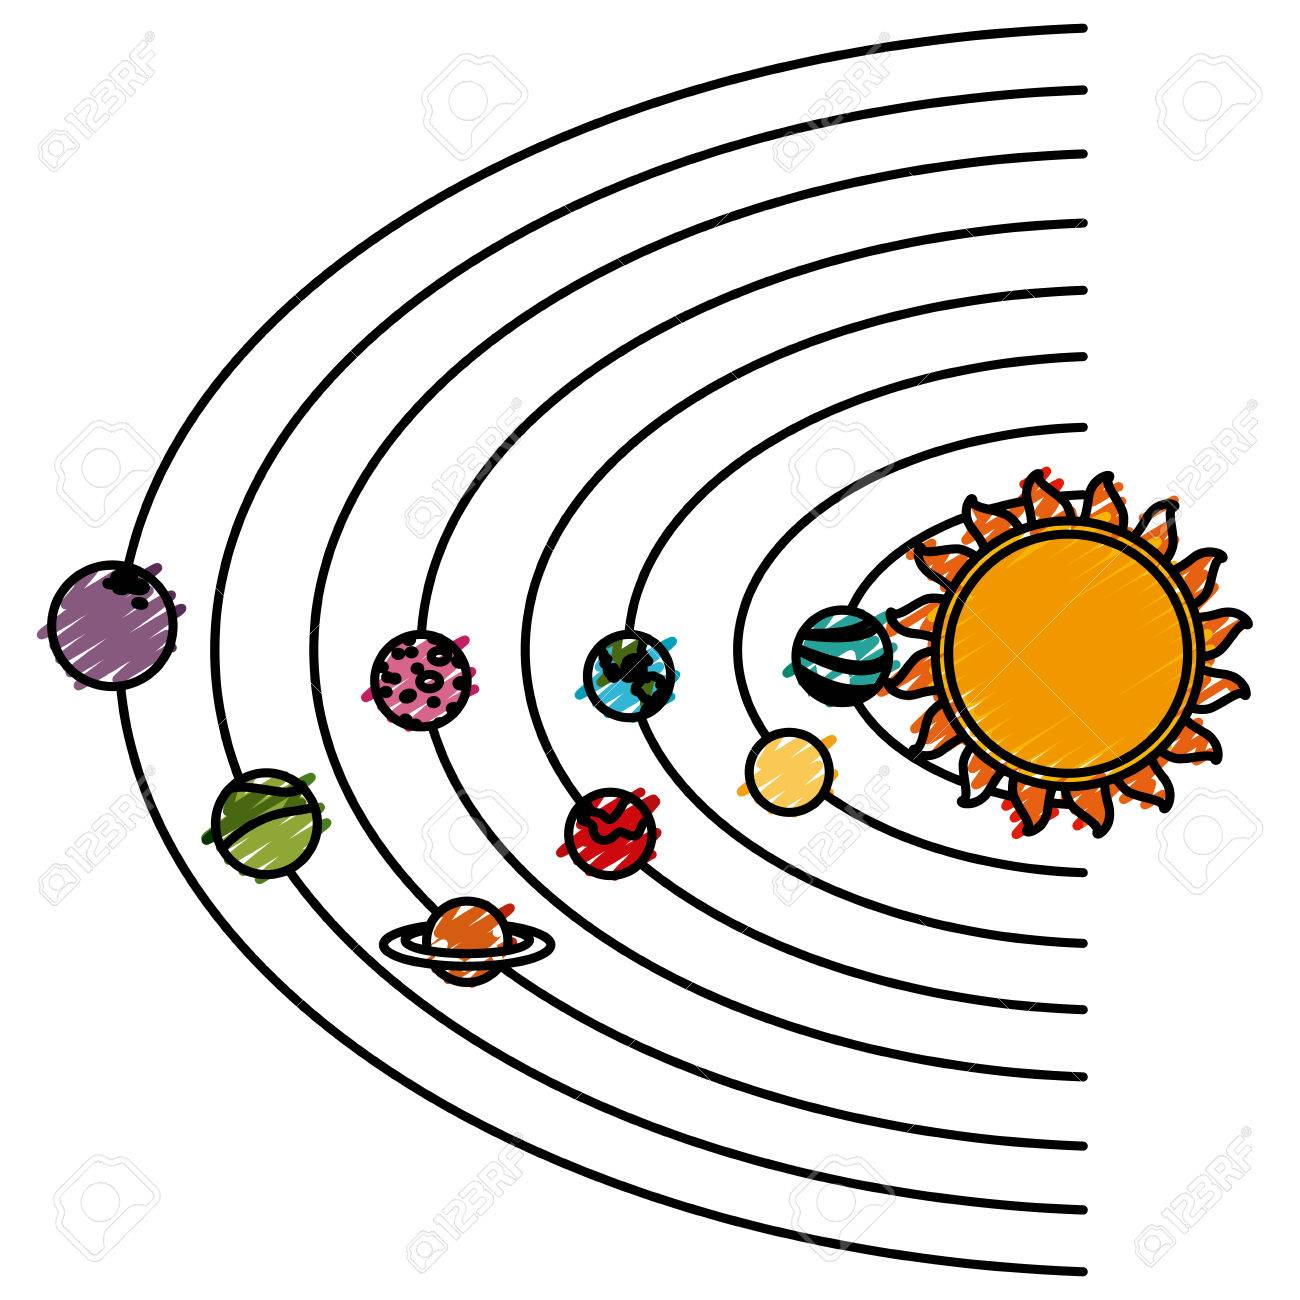 solar system cartoon icon vector illustration graphic design royalty rh 123rf com solar system clipart black and white solar system clip art black and white